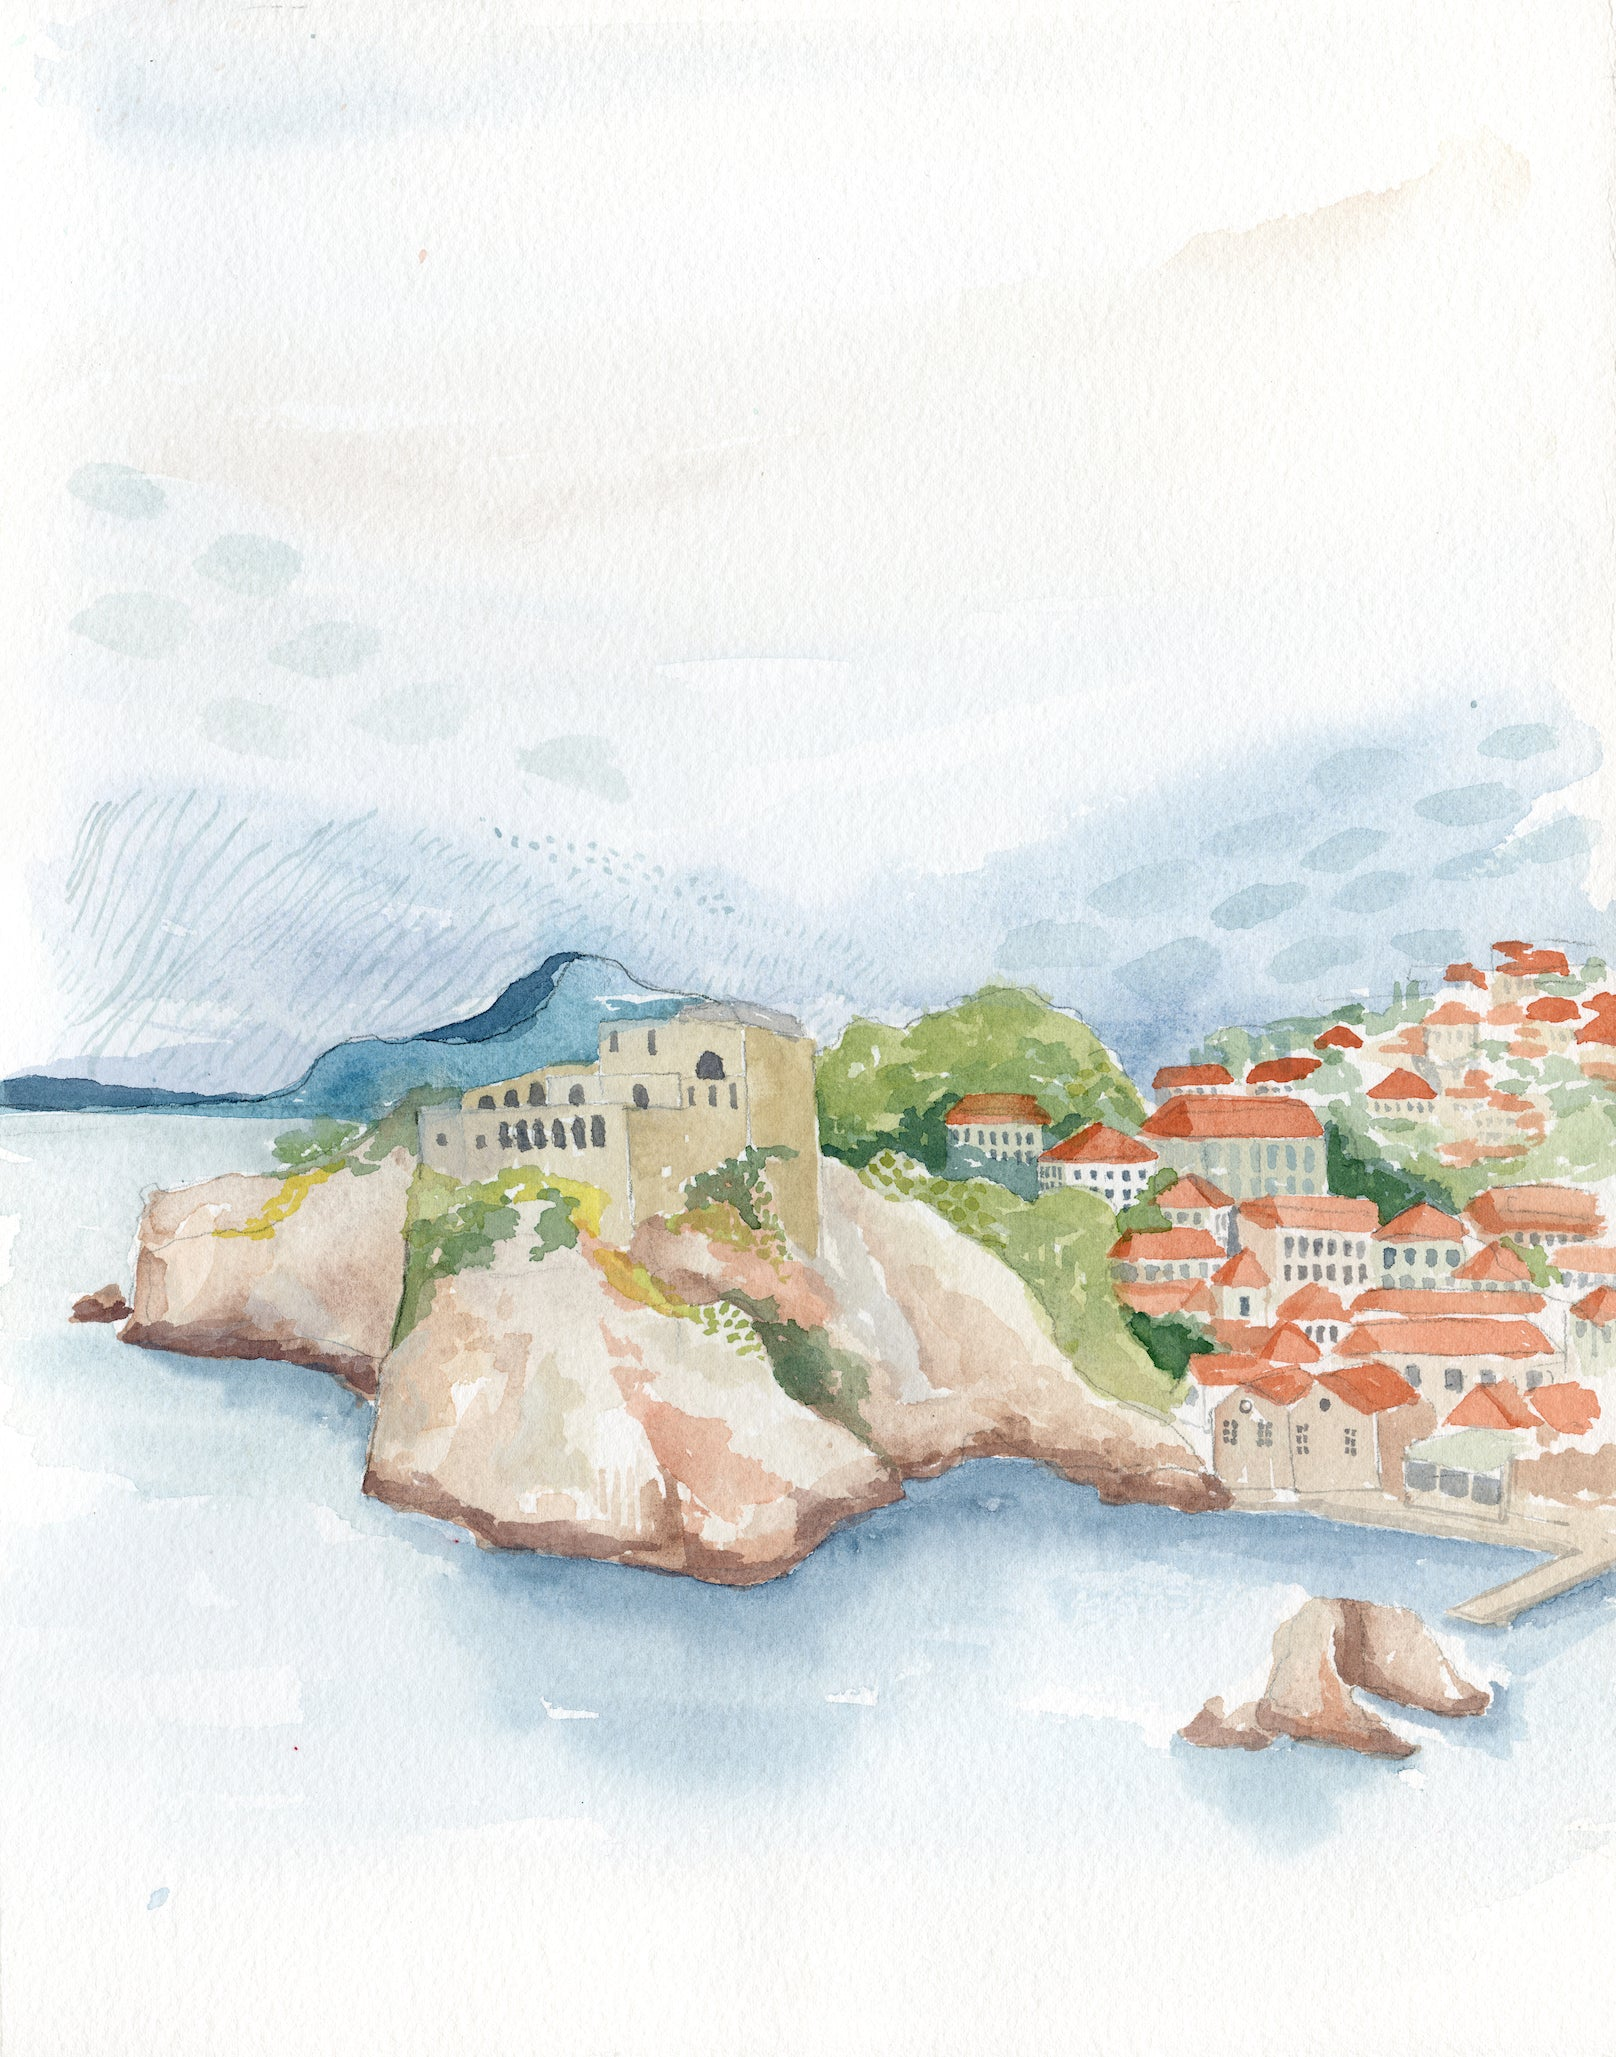 Croatia Original Watercolor Painting- 11x14